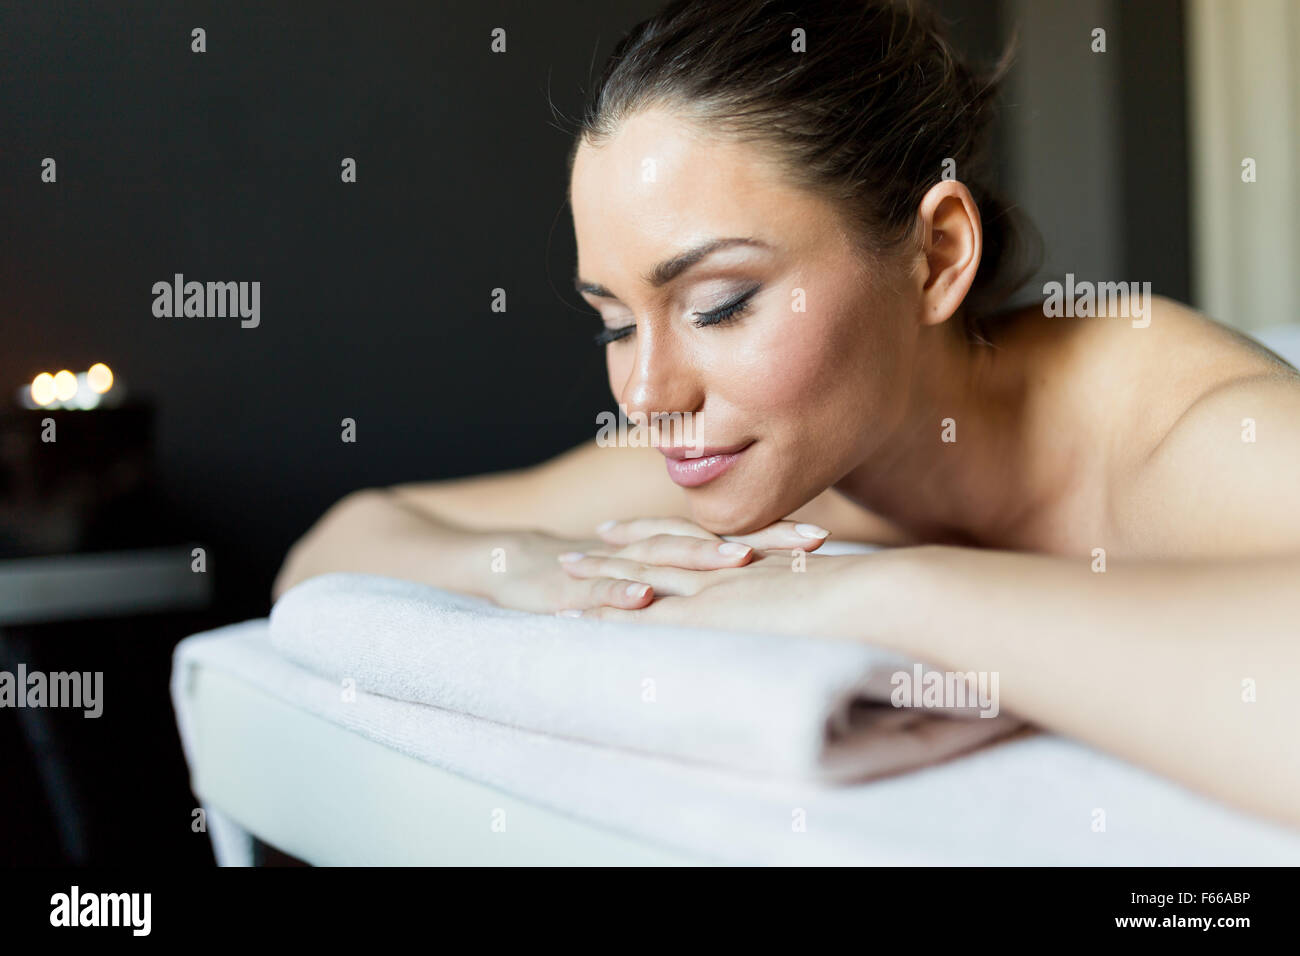 Portrait of a young and beautiful woman  relaxing with eyes closed  on a massage table in a dark room with candlelight - Stock Image